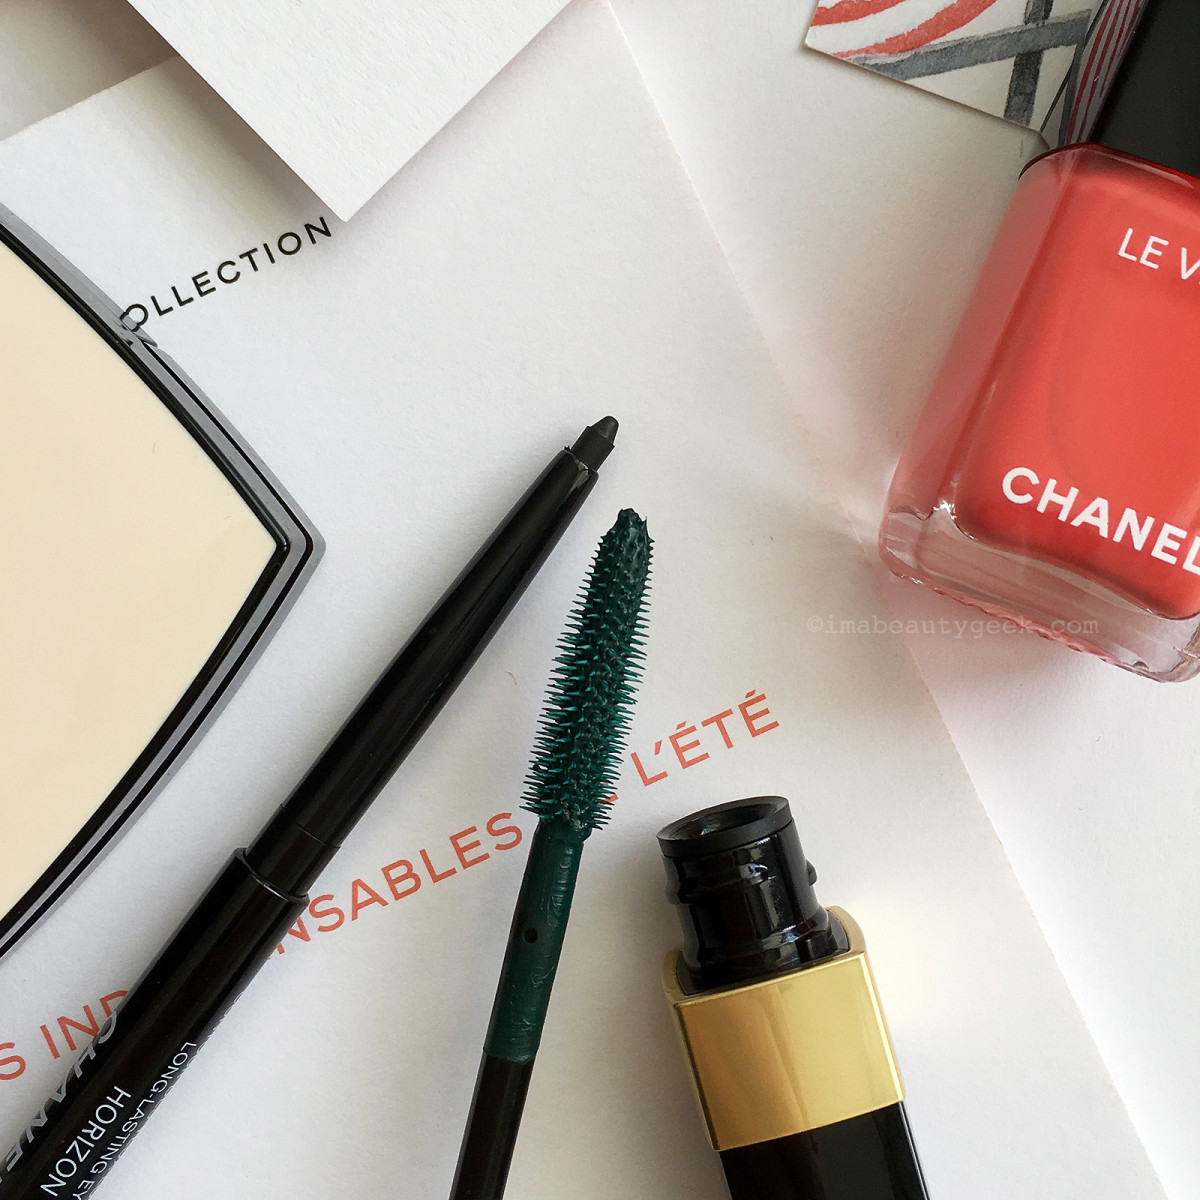 Chanel Cruise Collection summer 2017 limited-edition waterproof liner and waterproof mascara